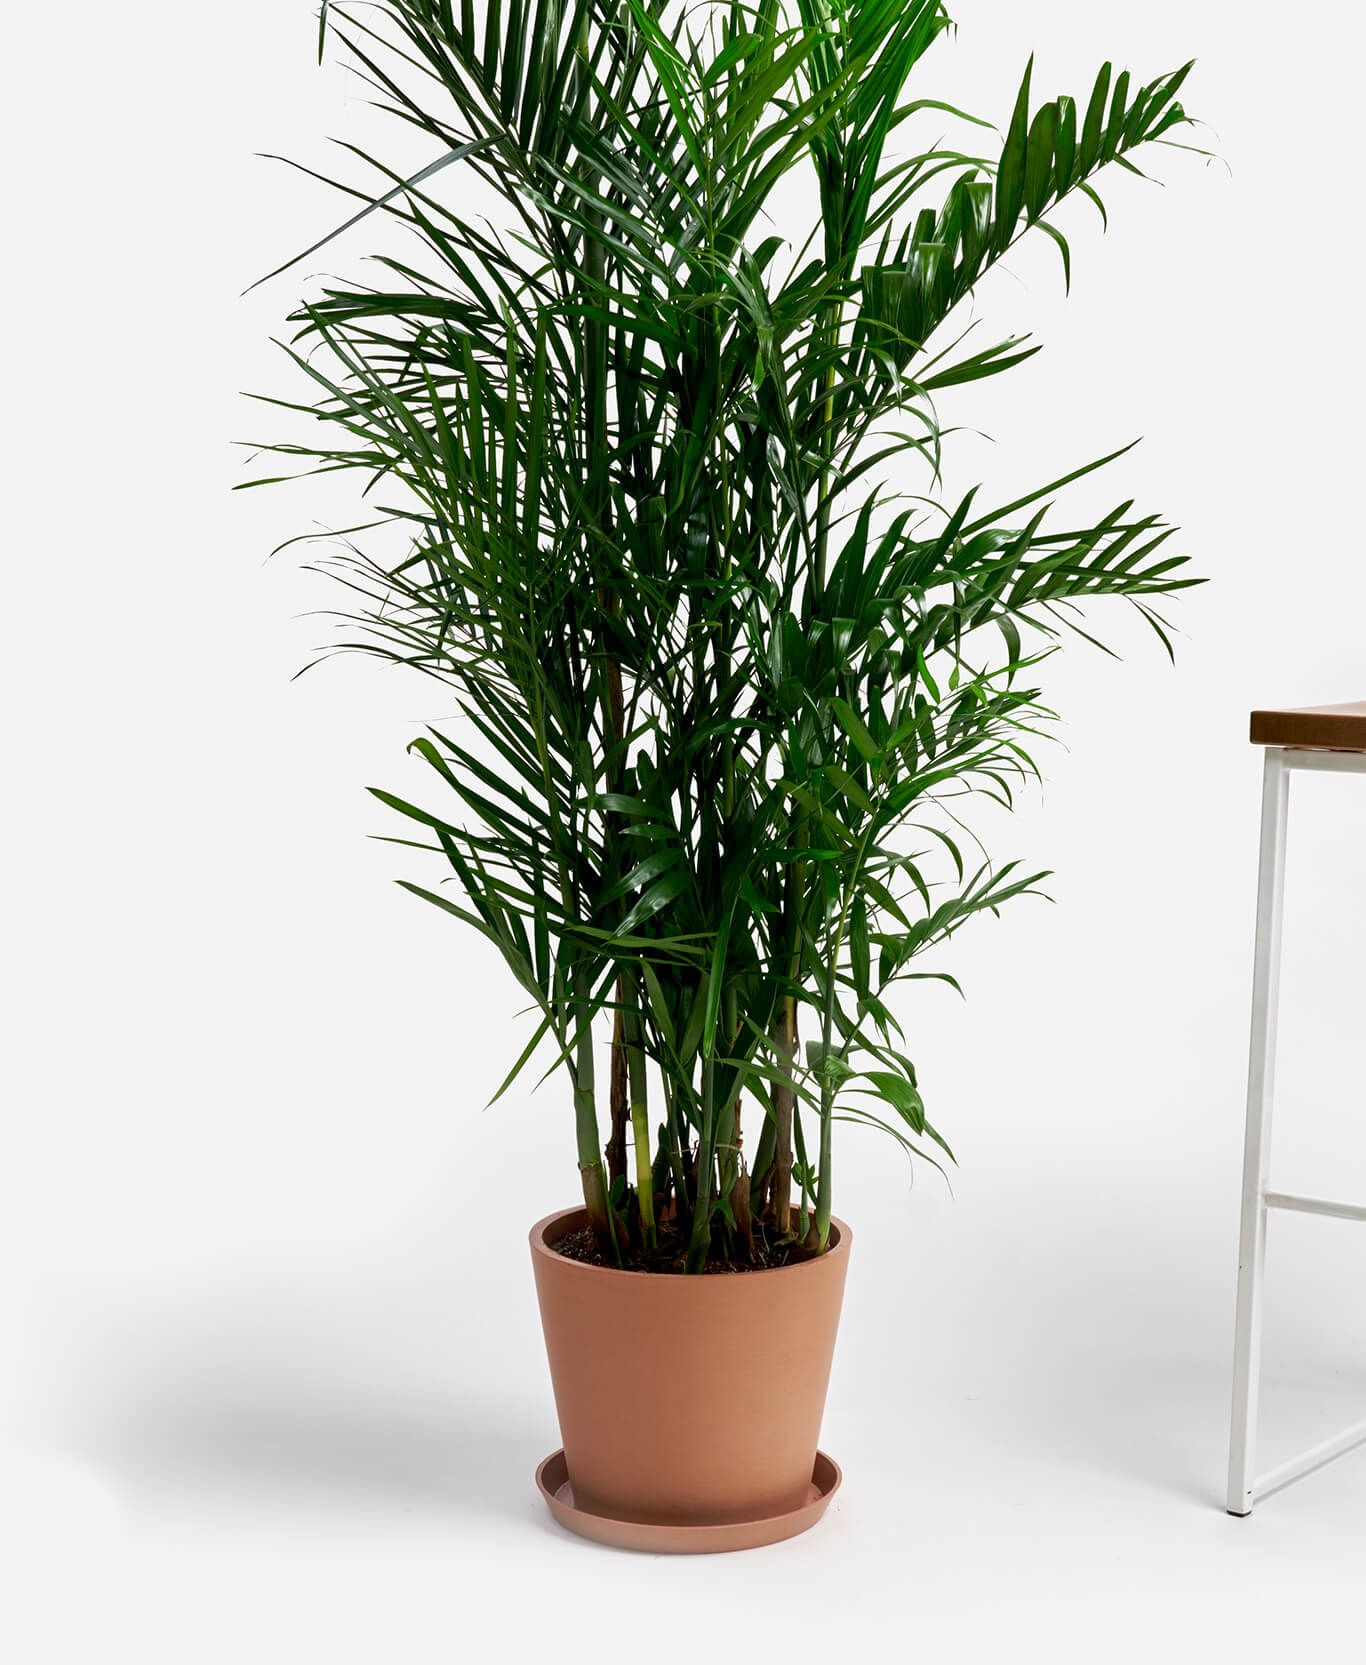 Buy Large, Potted Bamboo Palm Indoor Plant | Bloomscape